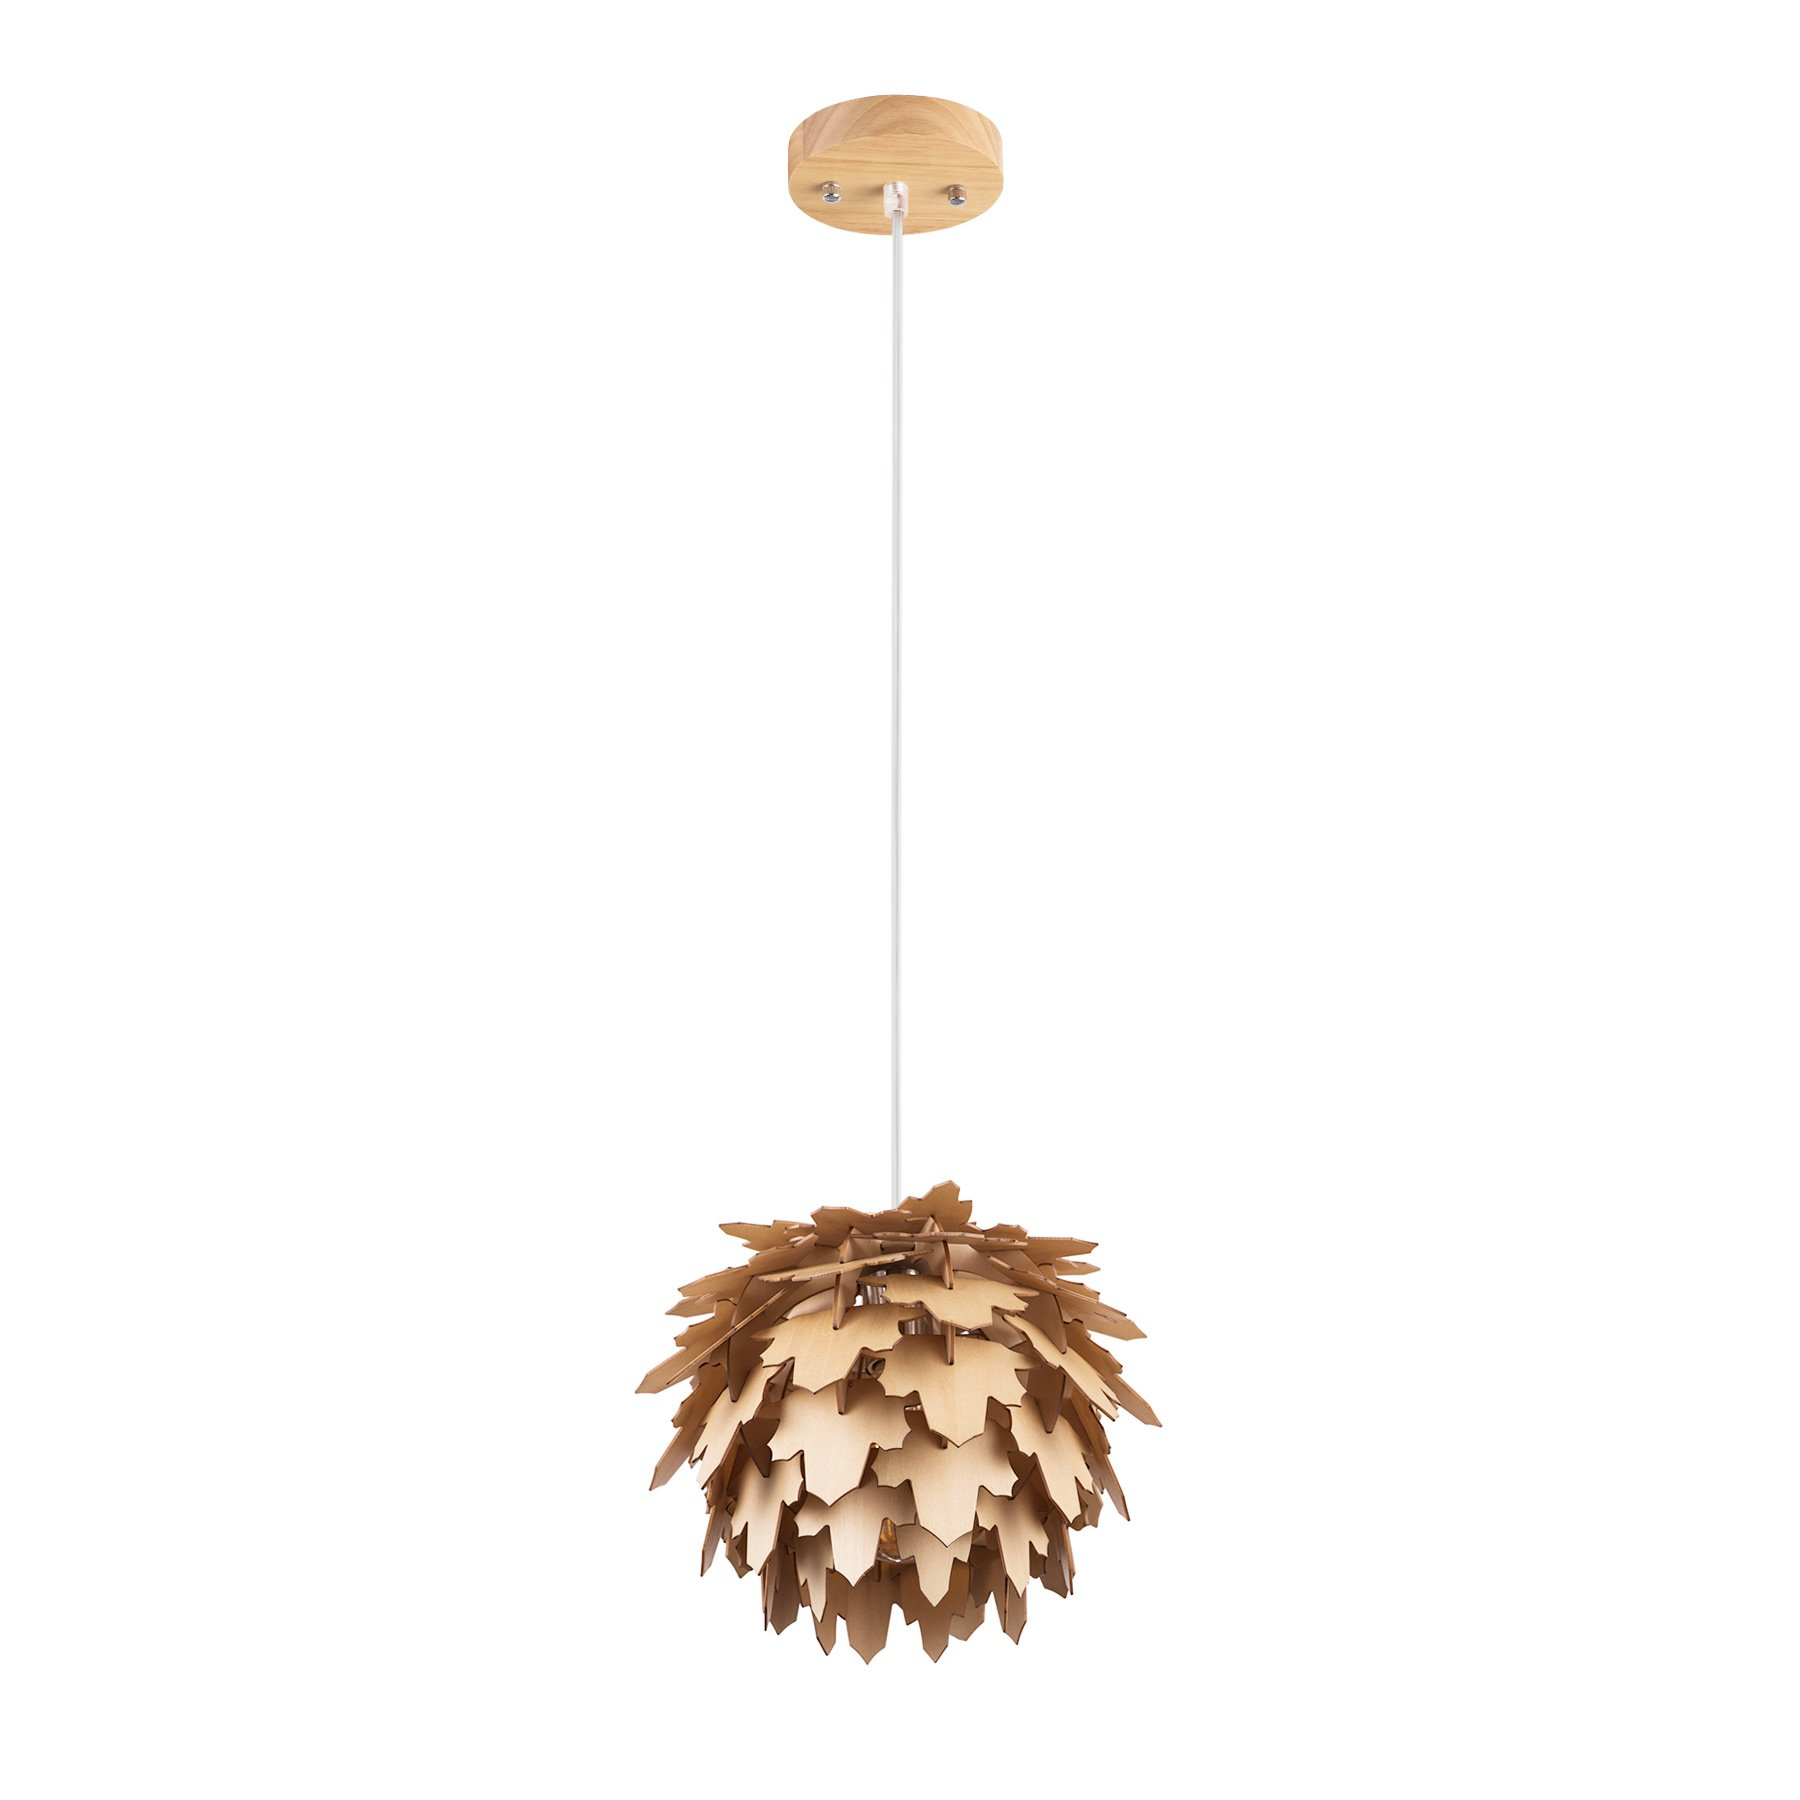 MAYKKE Coni Wooden Pendant Lamp | Modern & Contemporary Hanging Ceiling Lighting with Adjustable Cord | Natural Wood Finish, MDB1080101